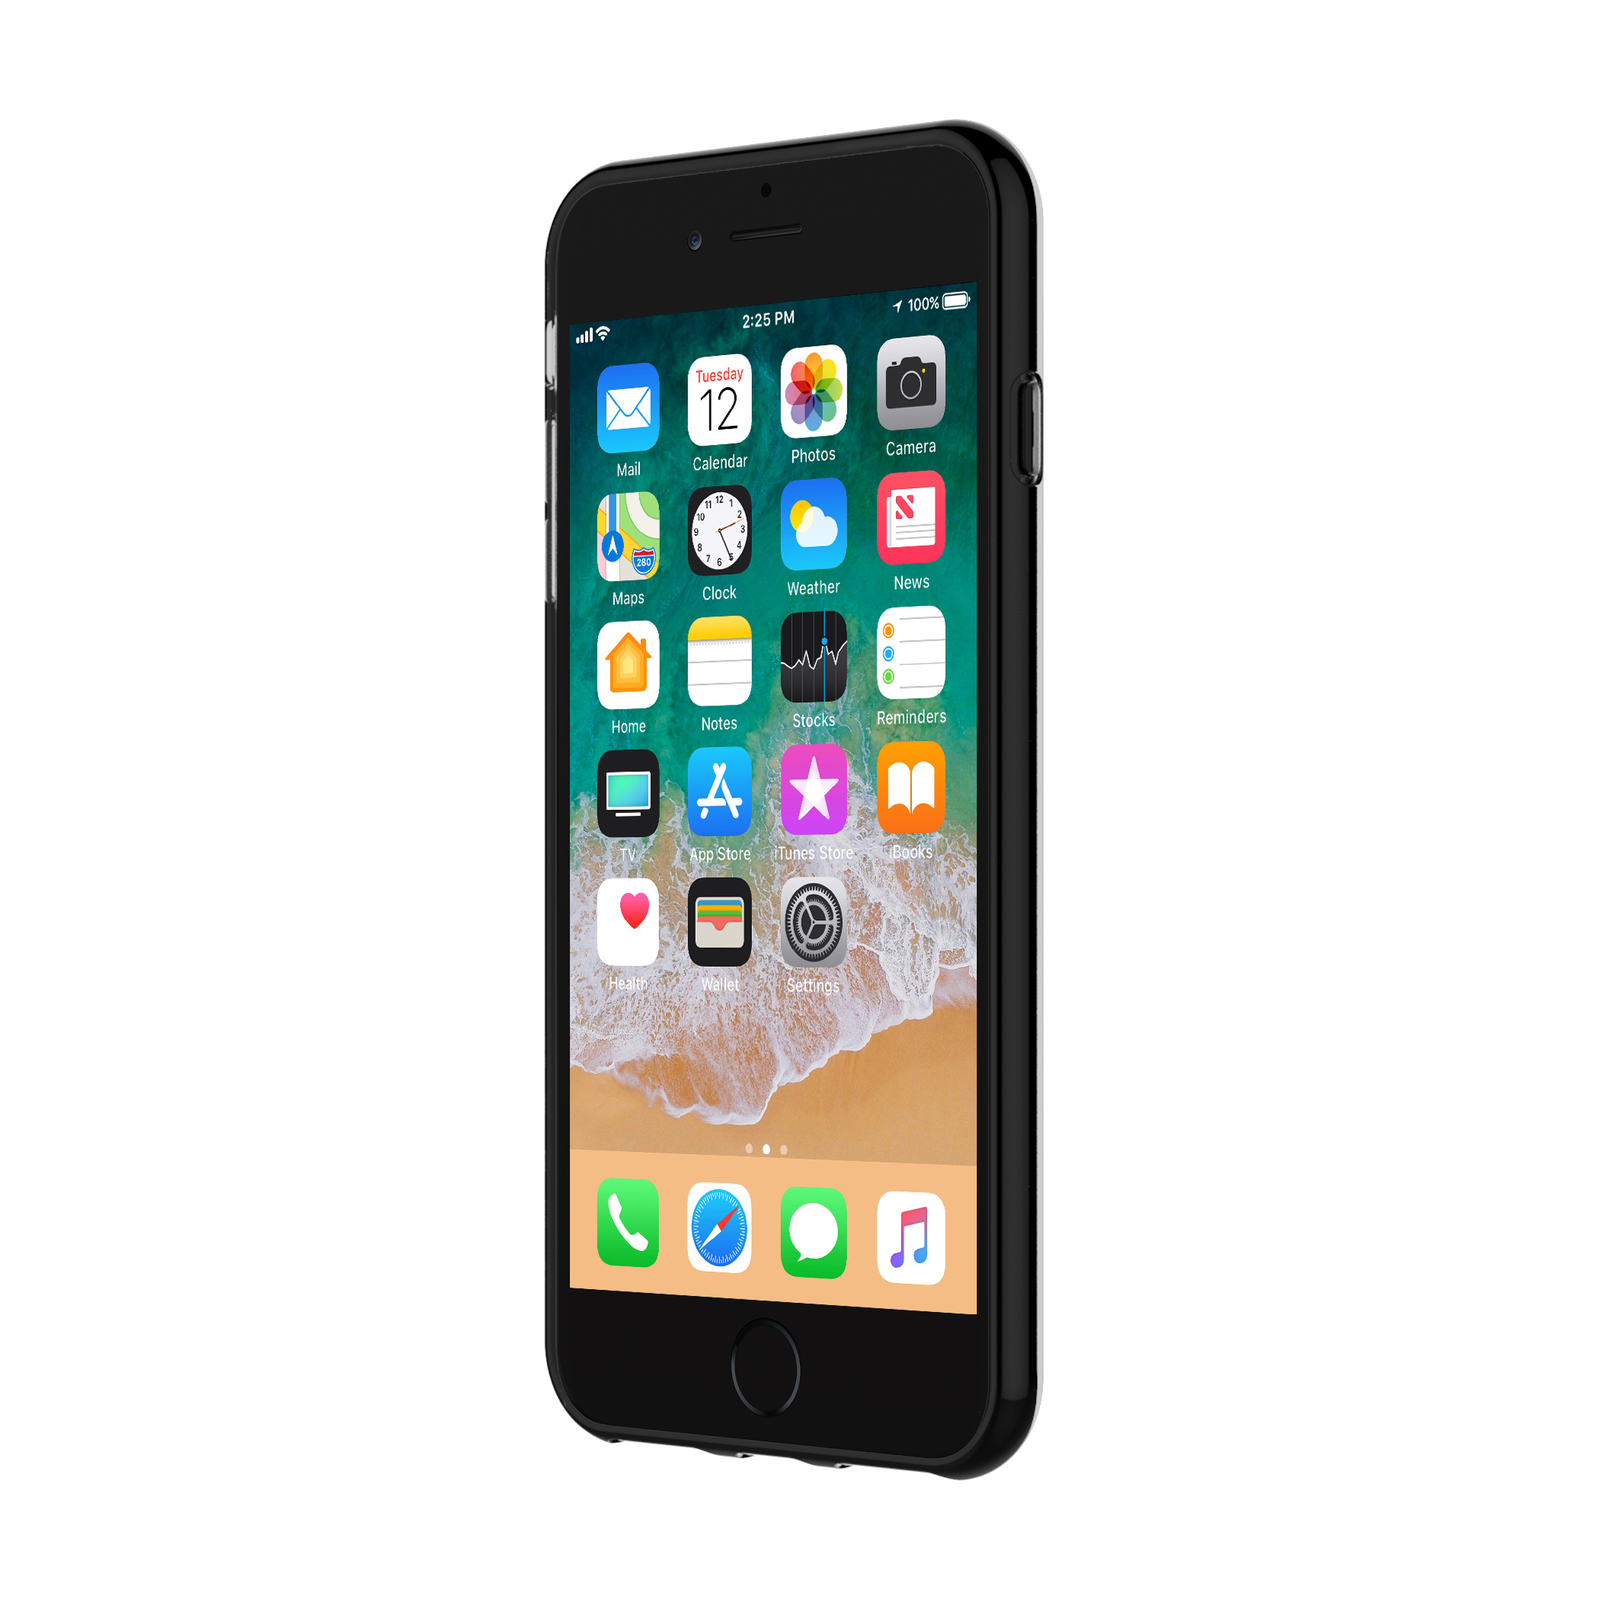 87248e318c7 Incipio NGP Pure Case iPhone 6/7/8 - Black | at Mighty Ape NZ